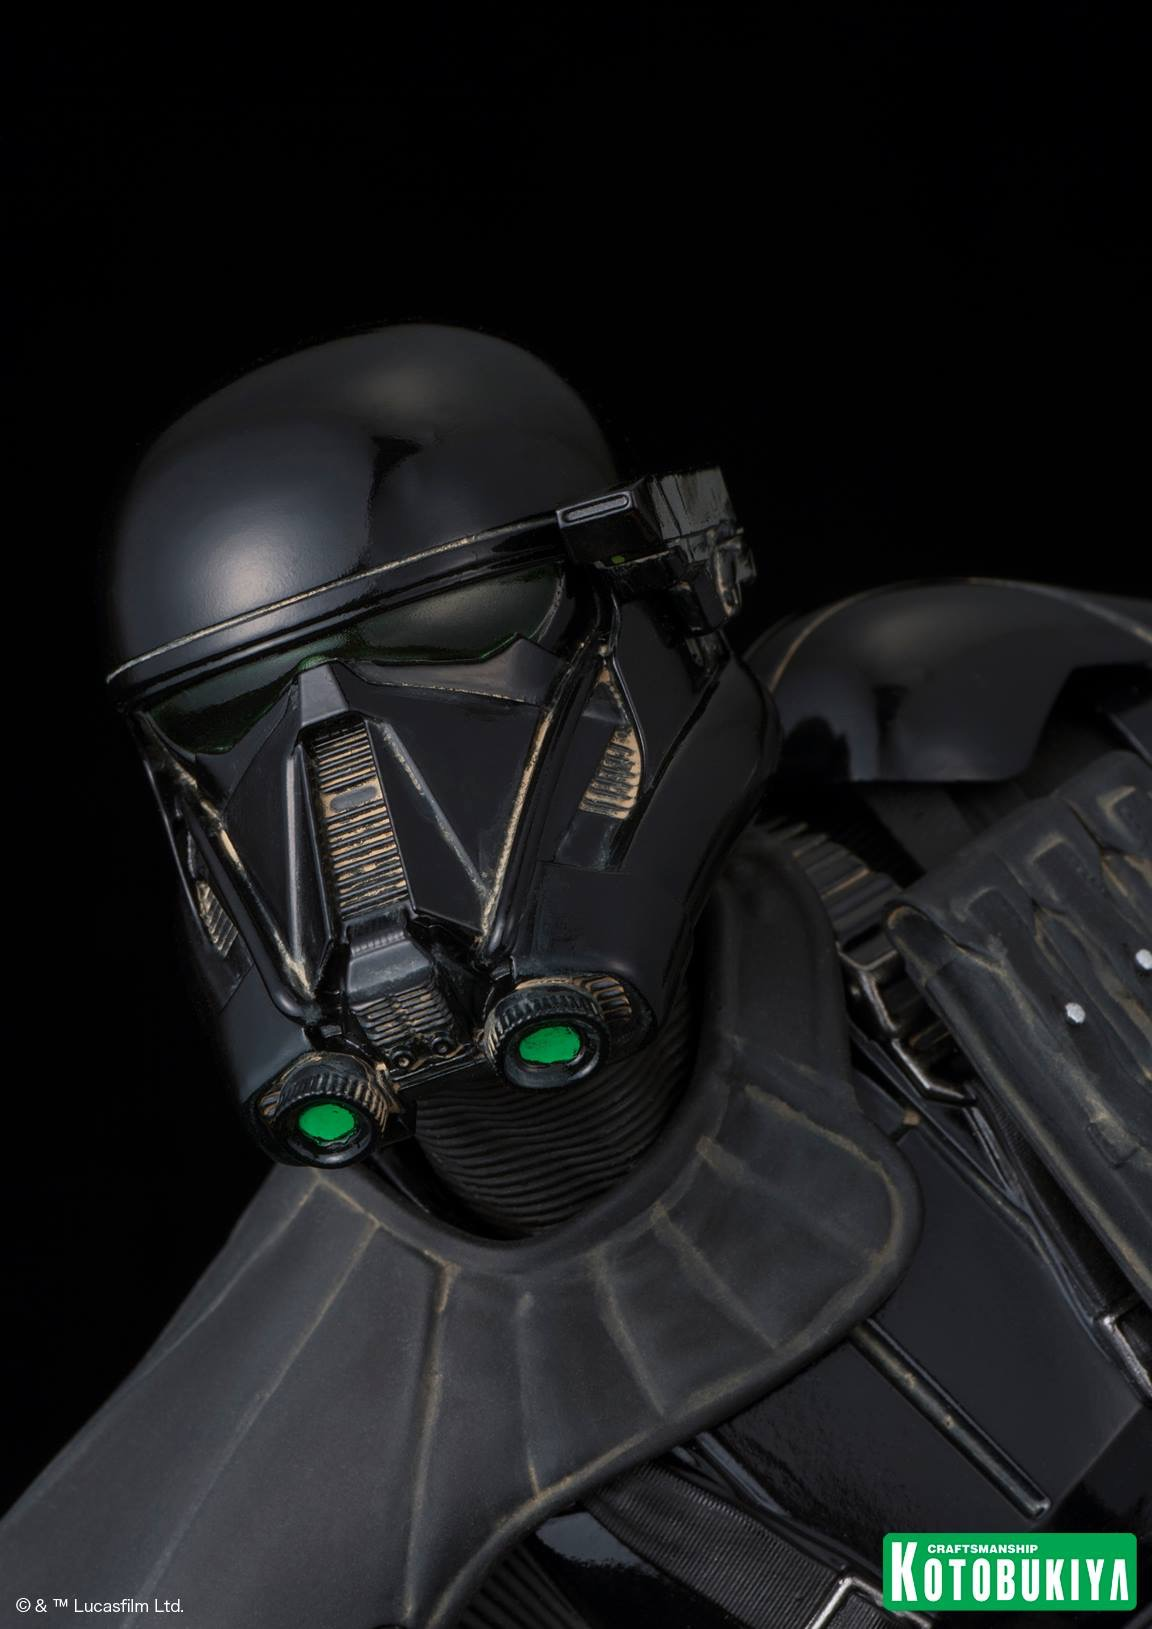 rogue one death trooper artfx figure coming soon. Black Bedroom Furniture Sets. Home Design Ideas